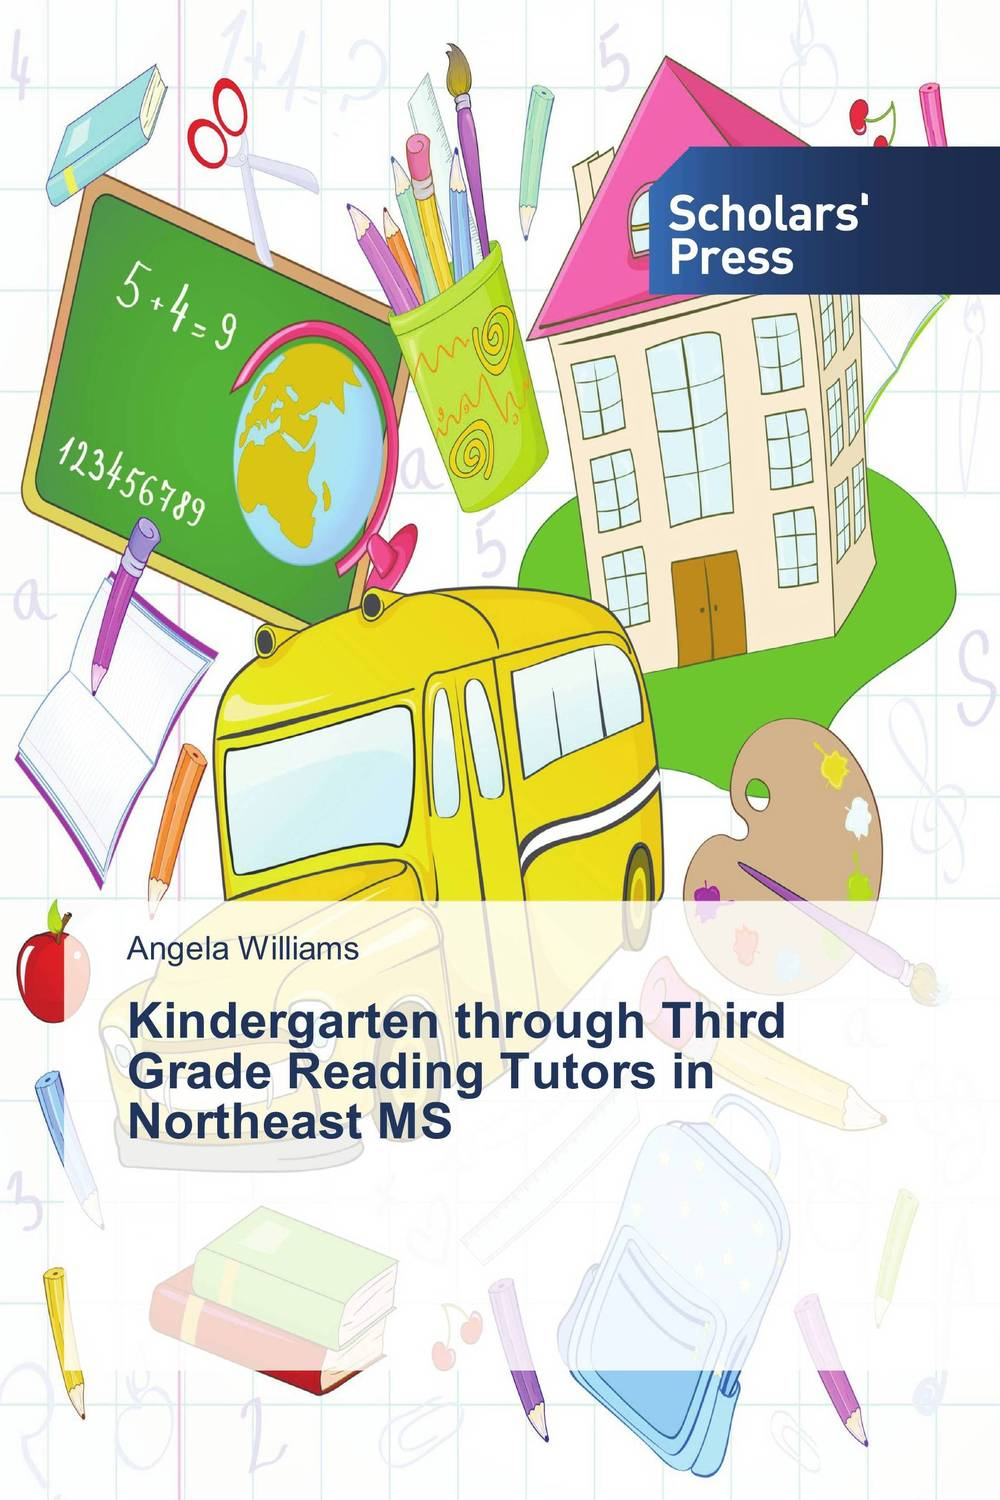 Kindergarten through Third Grade Reading Tutors in Northeast MS